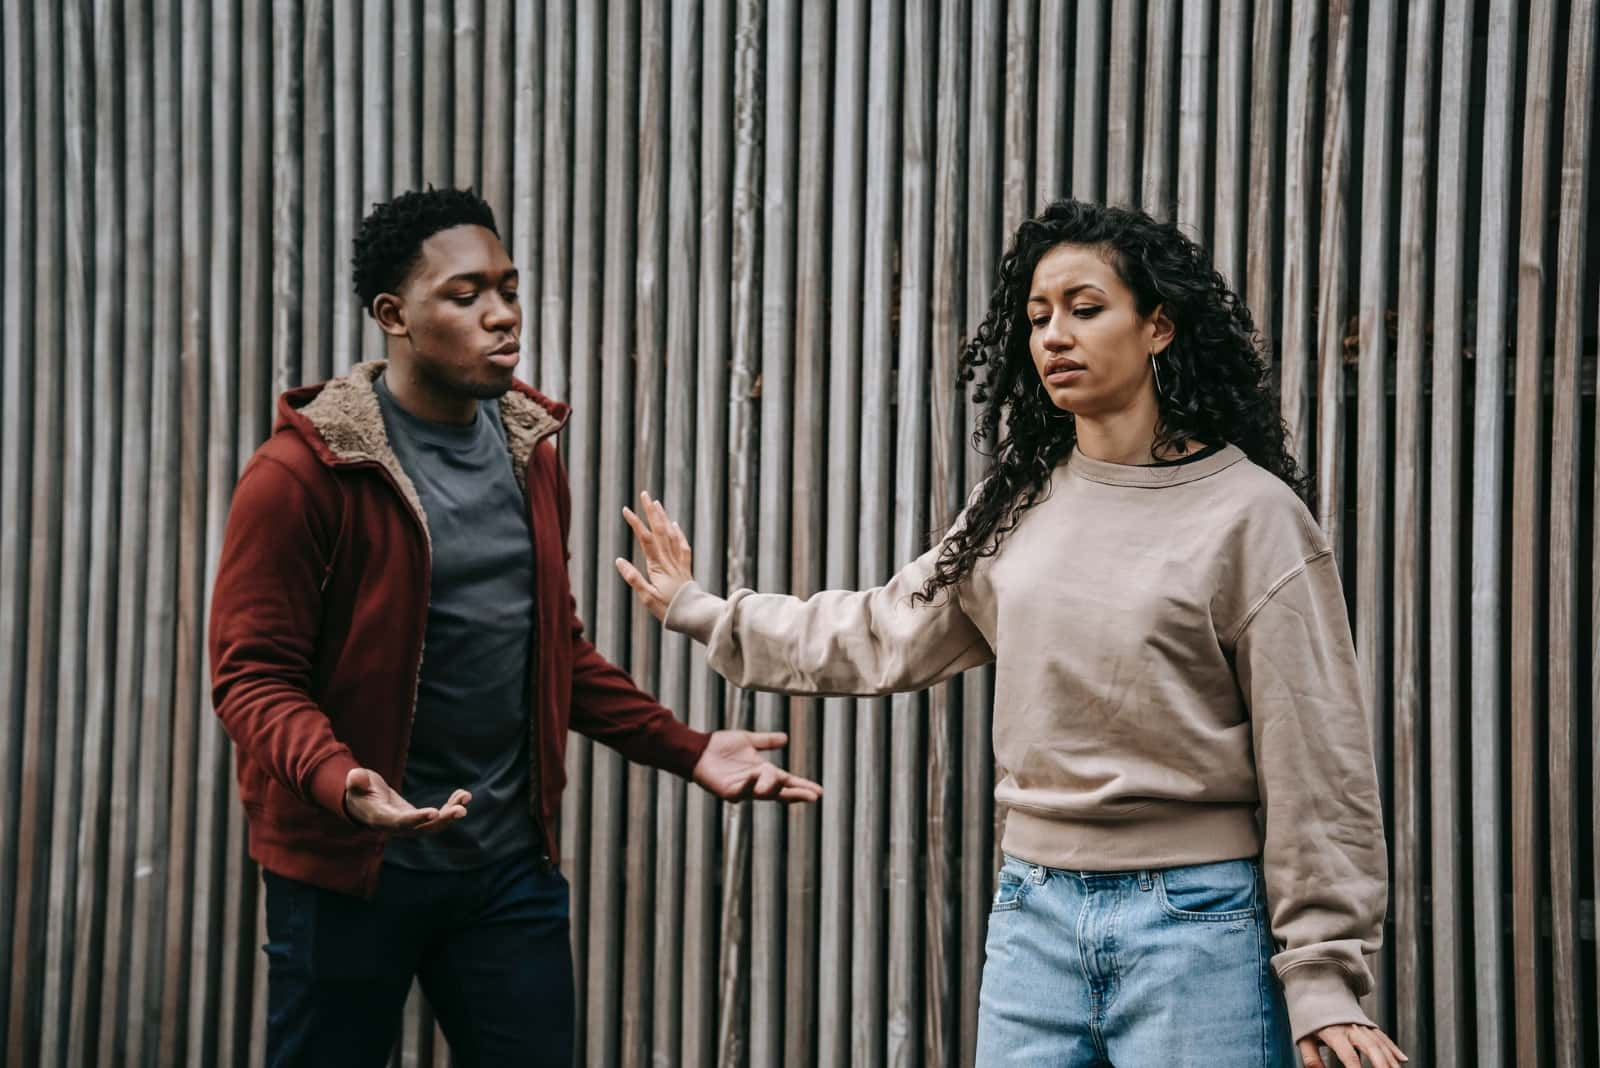 man and woman with curly hair arguing outdoor